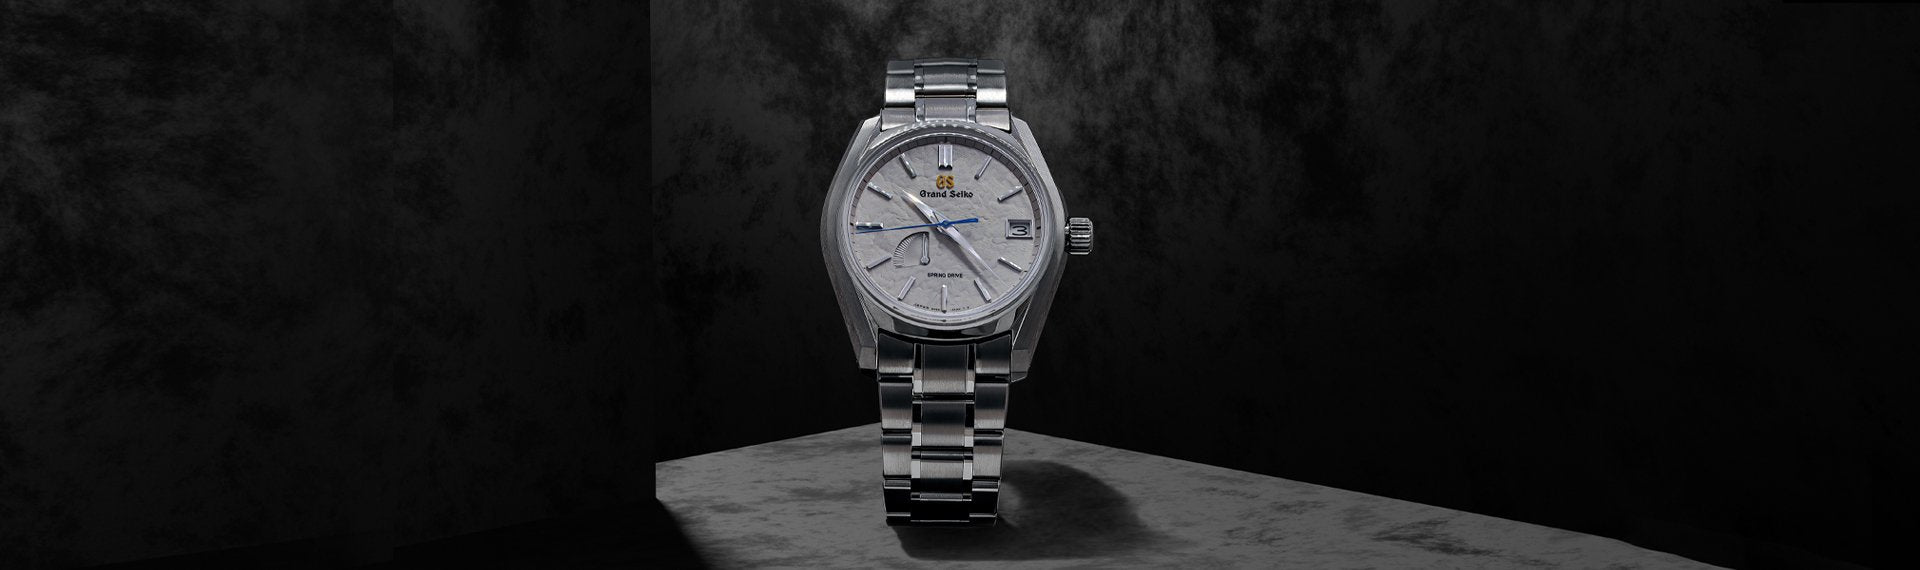 Burdeen's Jewelry Certified Pre-Owned Watch Collection